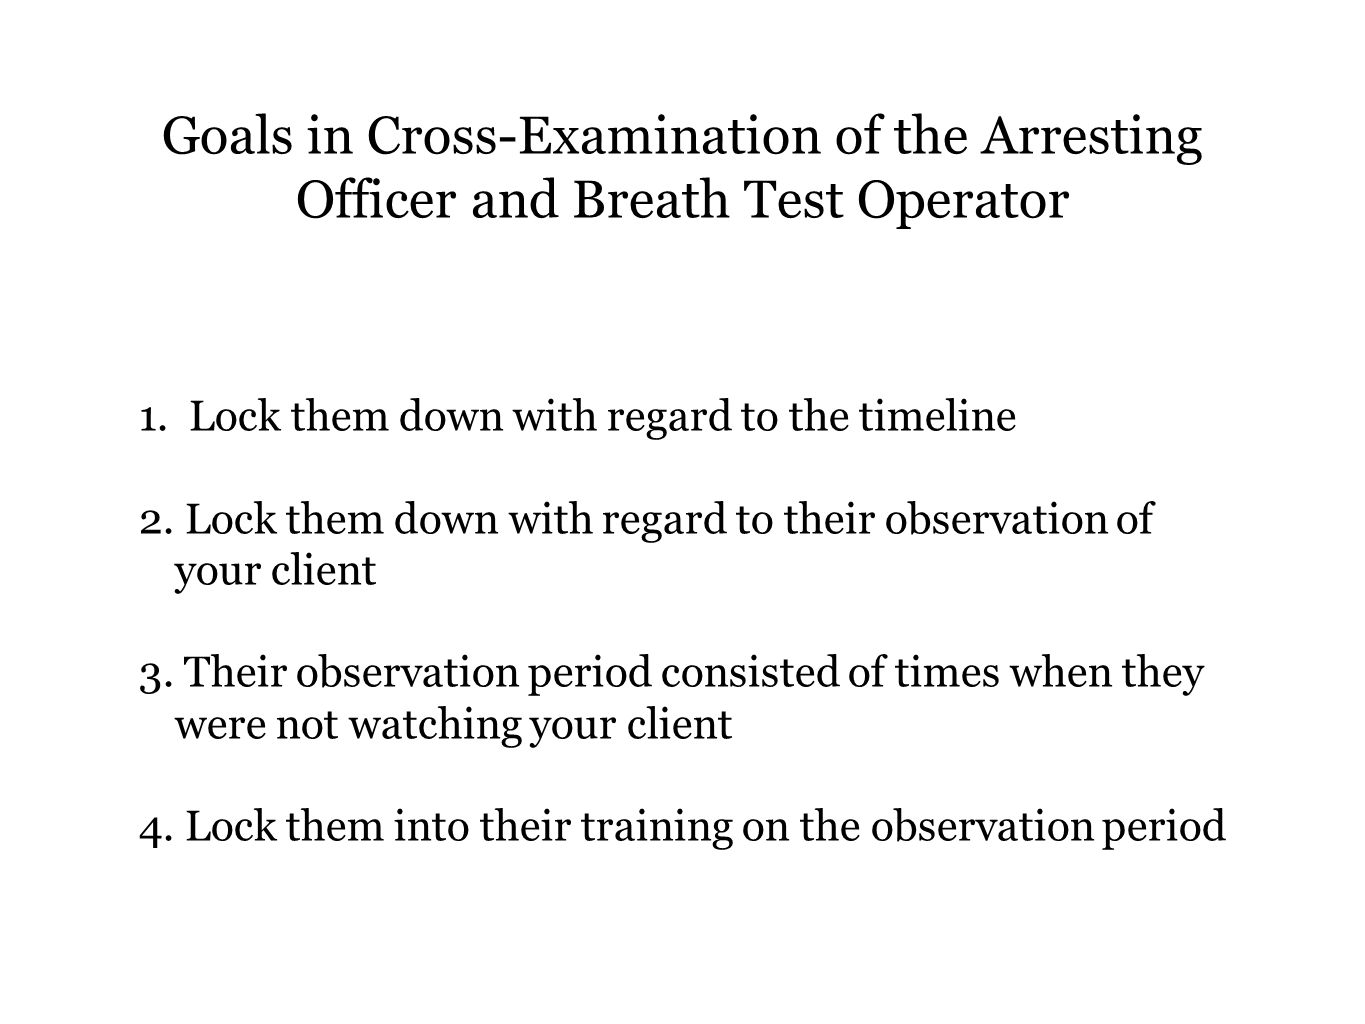 Goals in Cross-Examination of the Arresting Officer and Breath Test Operator